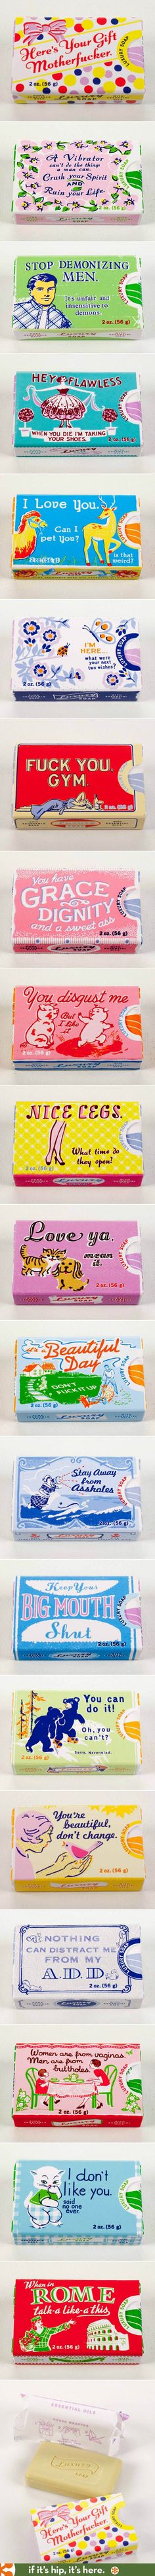 Sassy Soap packaging.